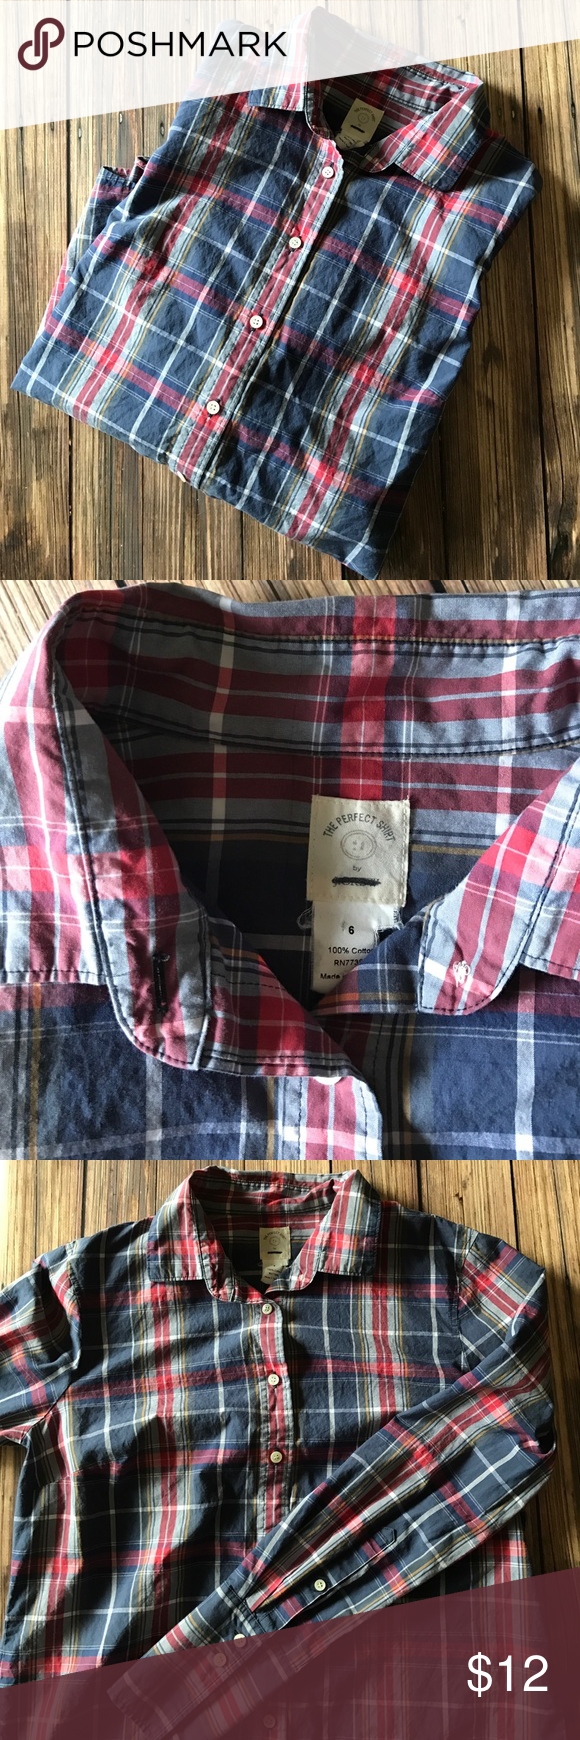 """J. Crew Blue Plaid """"The Perfect Shirt"""" Button Down J. Crew """"The Perfect Shirt"""" blue, red, white, & yellow plaid button down shirt. Excellent condition. Tag is ripped & logo marked out. Longer cuffs than a traditional button down. Size 6. Bundle and save! J. Crew Tops Button Down Shirts"""